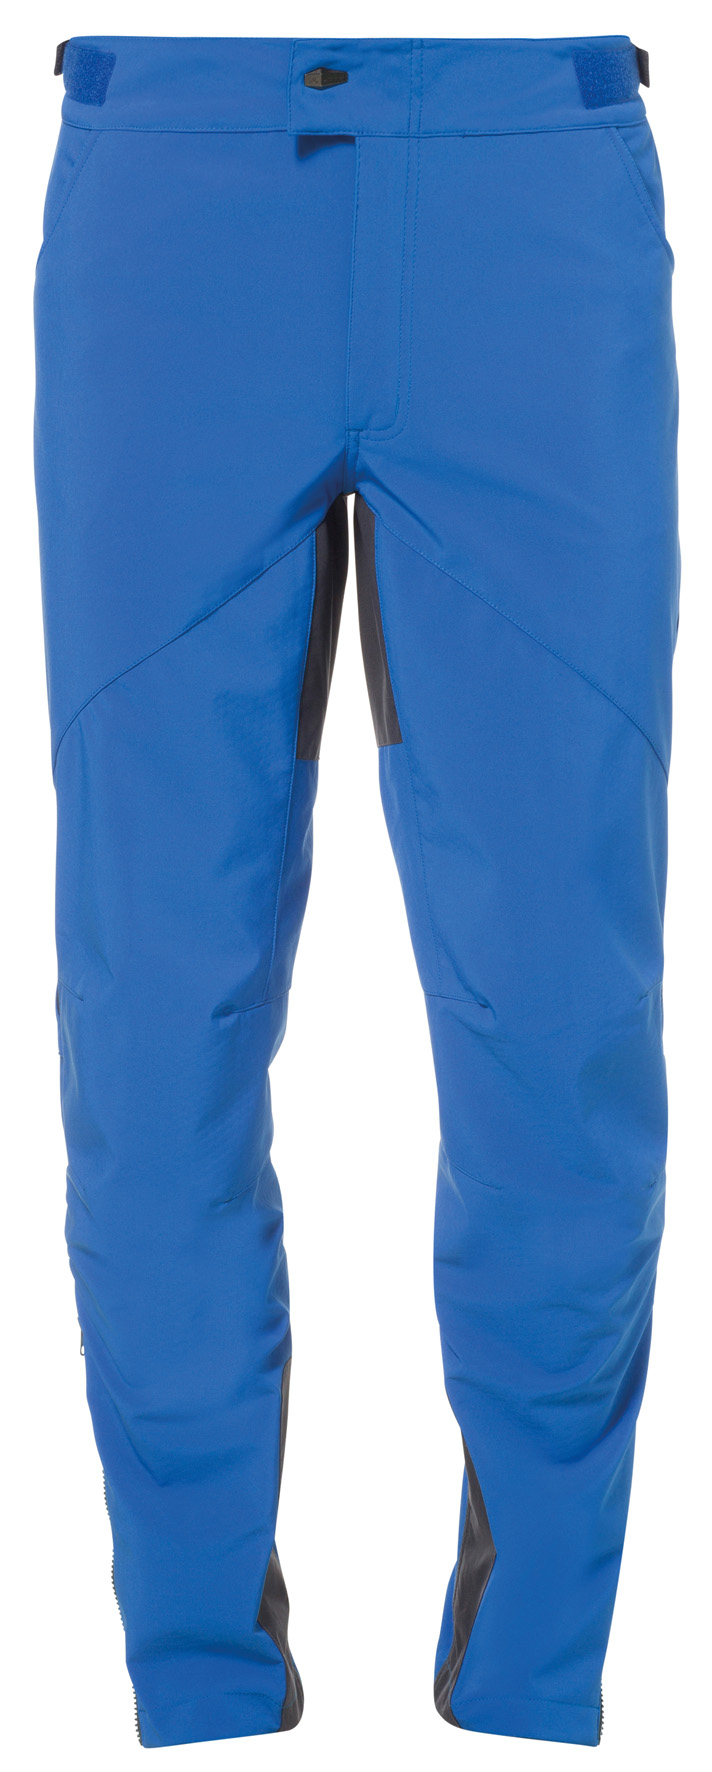 VAUDE Men´s Qimsa Softshell Pants hydro blue Größe XXL - schneider-sports